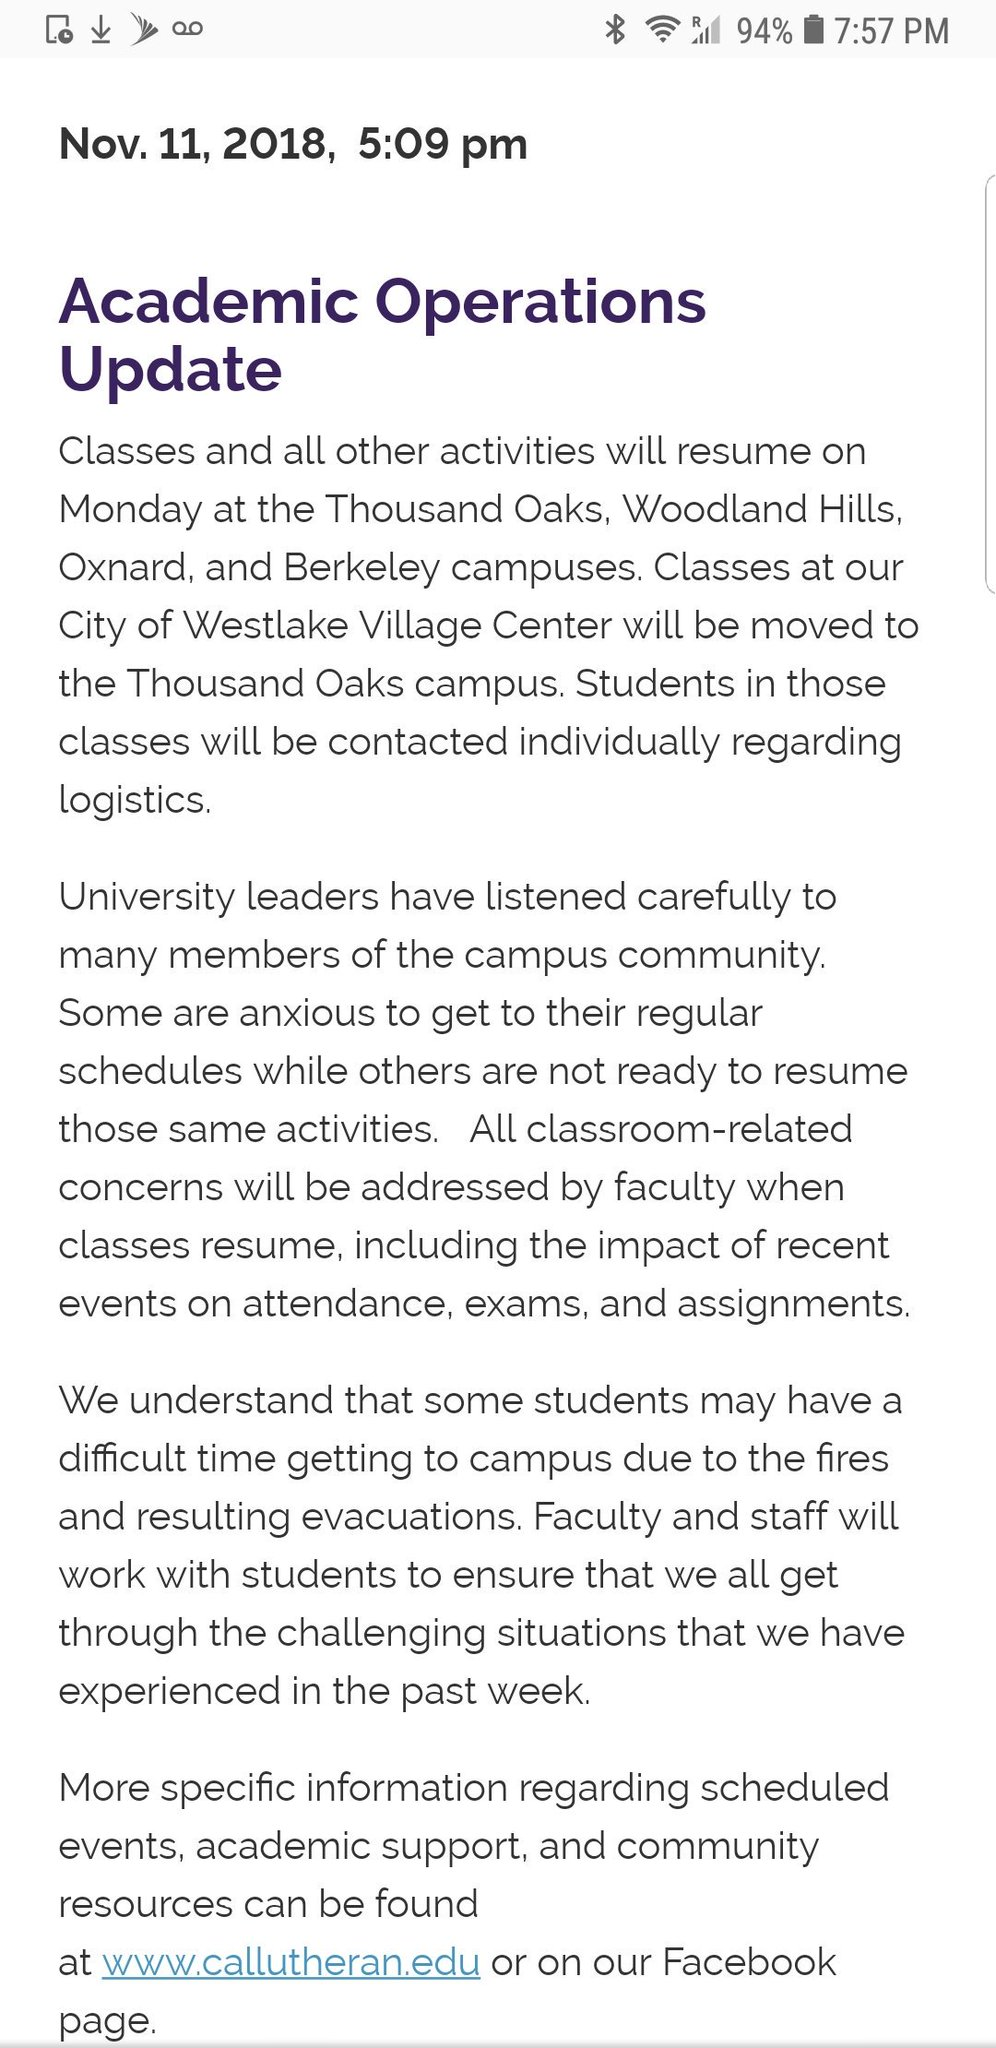 CLU student group implores university leaders to cancel classes, which are scheduled to resume tomorrow (Monday) - Borderline tragedy, fire impacts still much too raw, they say. @SVAcorn https://t.co/XjwNCVwBpB